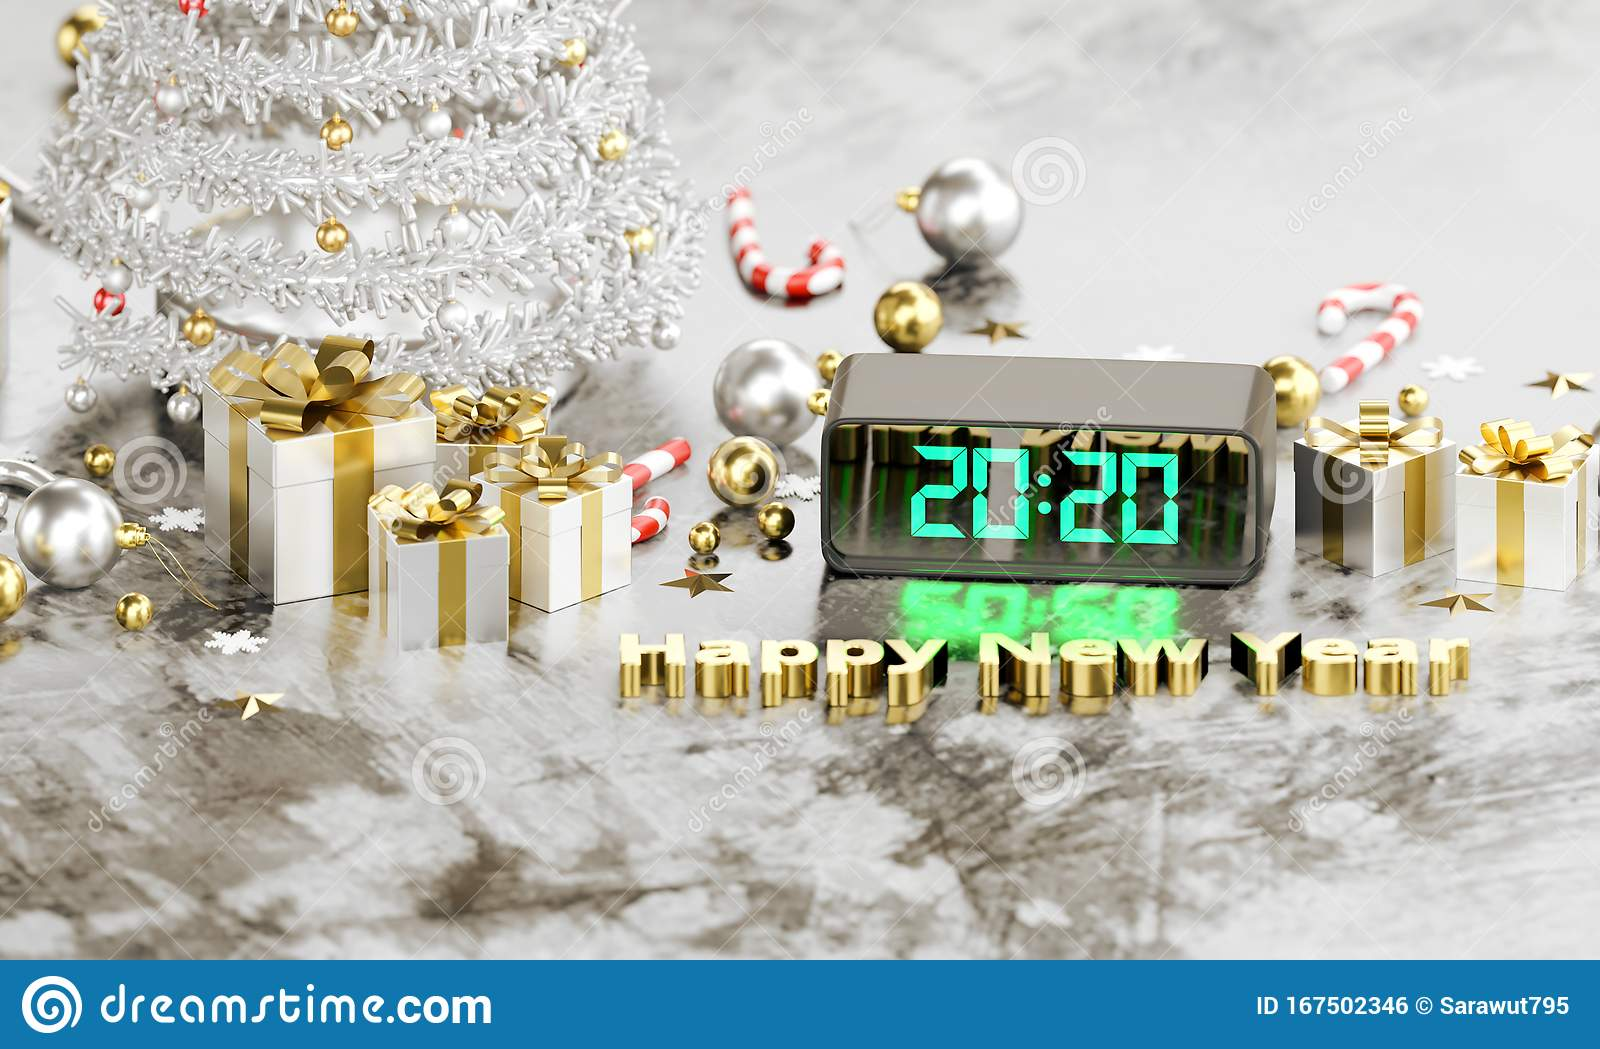 Merry Christmas Themes 2020 2020 Texts In Digital Clock LED Light Happy New Years Stock